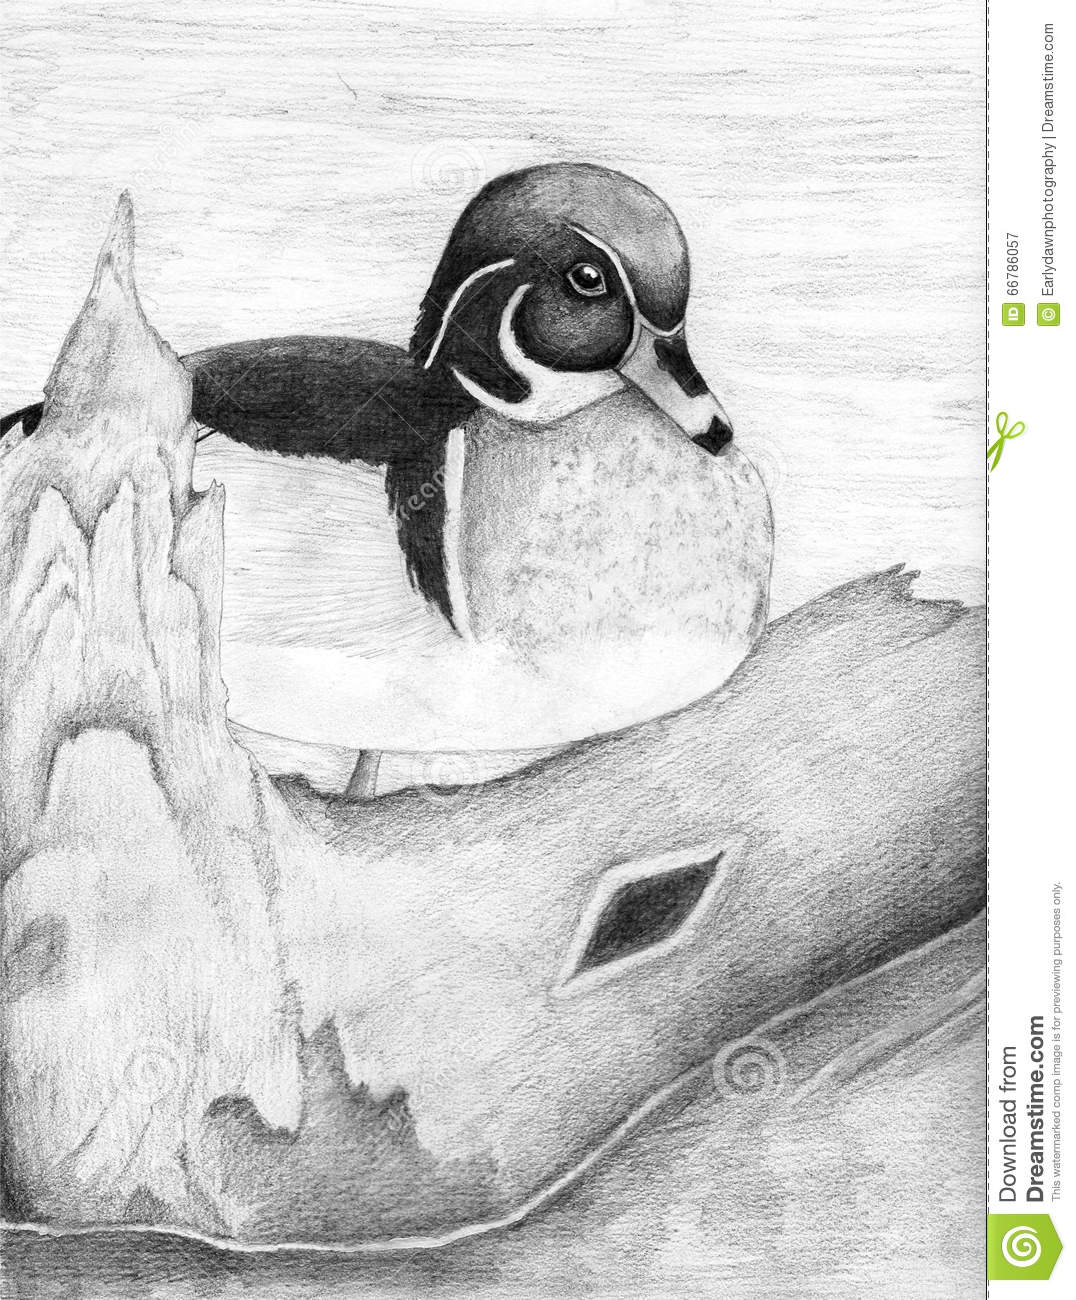 Wood duck drawing black and white pictures to pin on